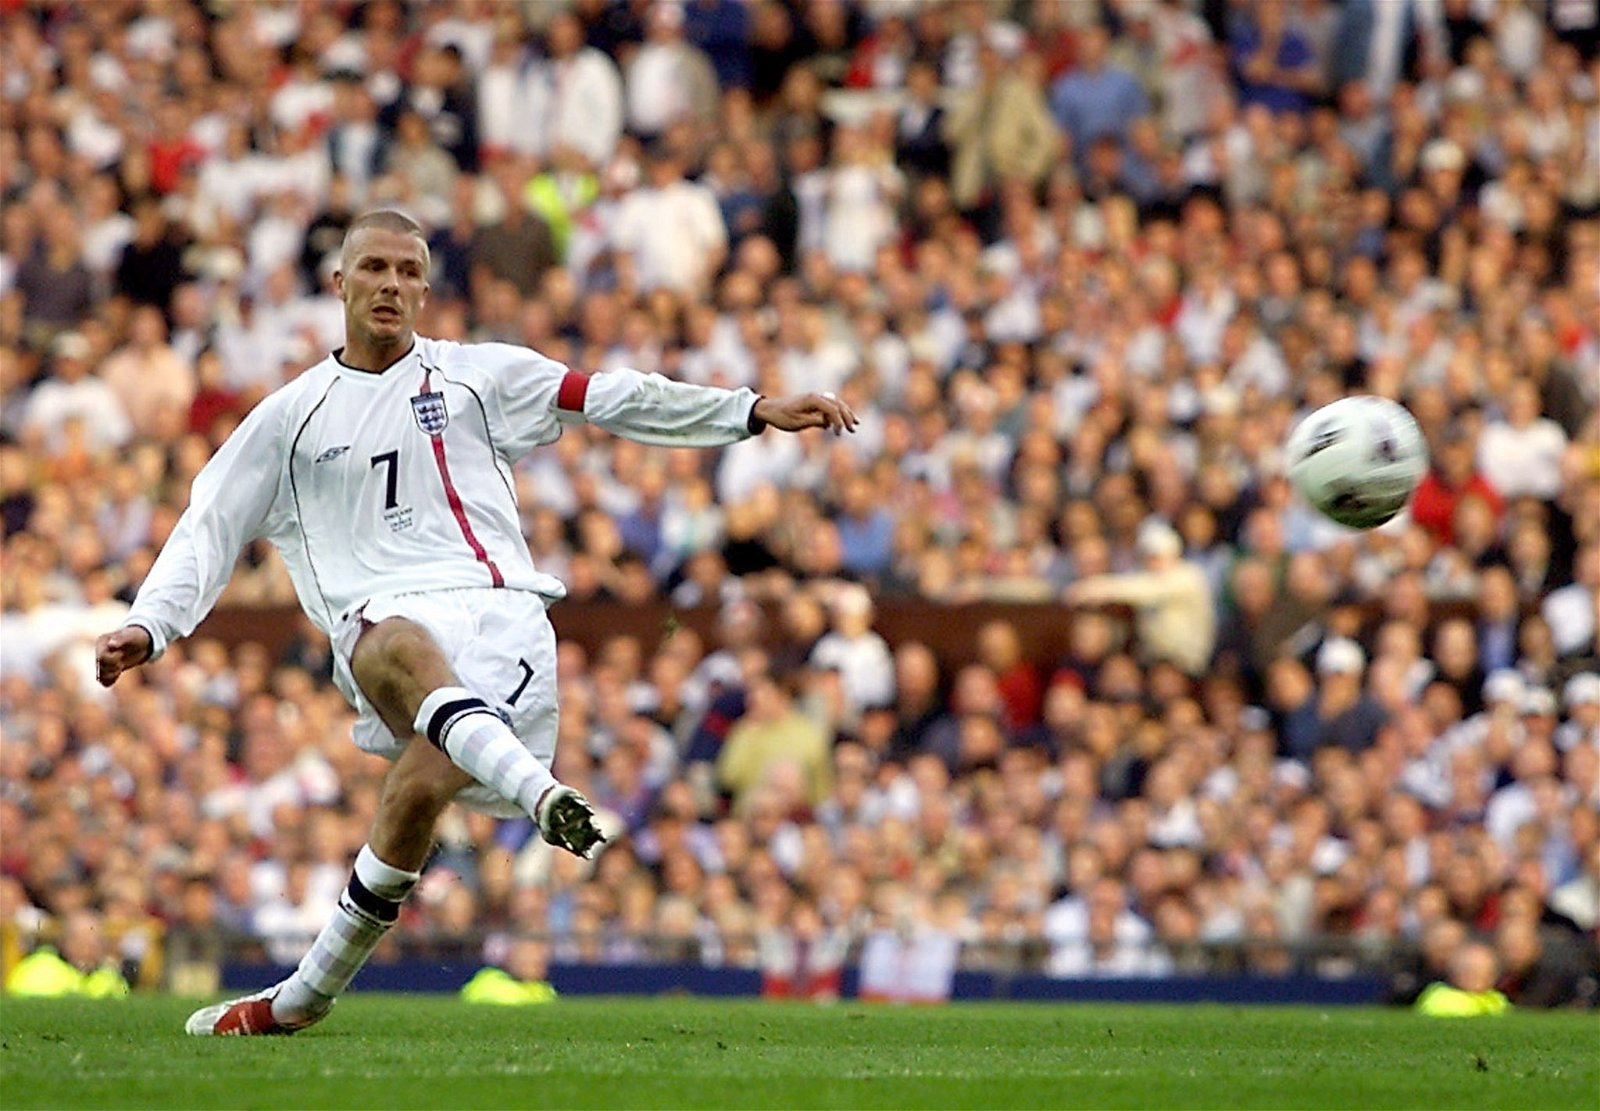 England's David Beckham scores against Greece in qualification for 2002 World Cup